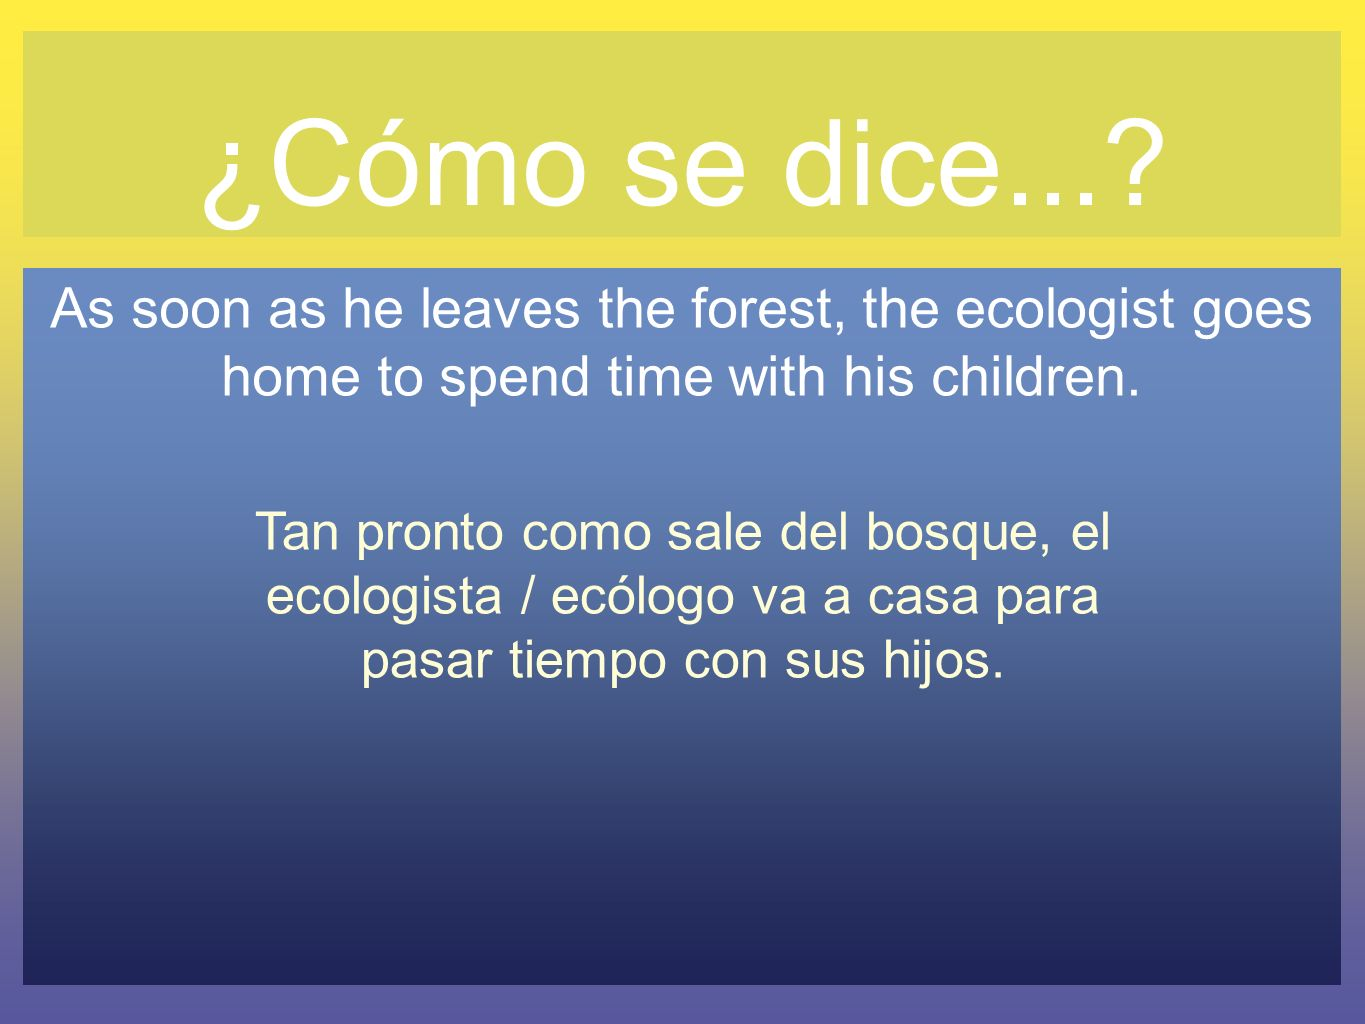 ¿Cómo se dice... As soon as he leaves the forest, the ecologist goes home to spend time with his children.